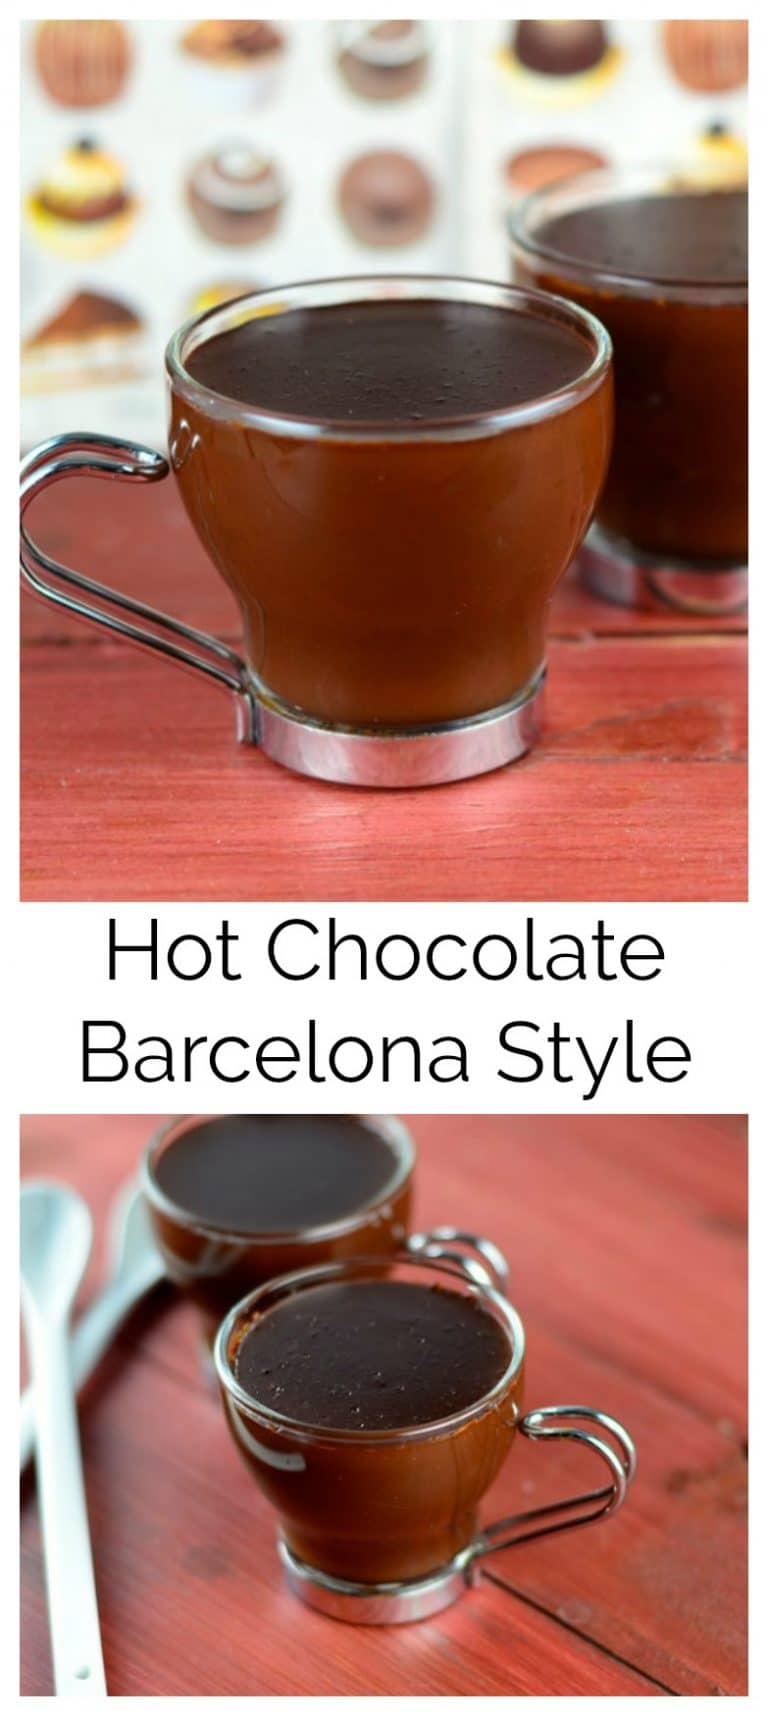 In Barcelona, specially in the old city, you can enjoy a dreamy thick rich chocolate caliente. This hot chocolate, Barcelona style is absolutely fantastic. Add some hot fresh churros and you are in chocolate heaven.